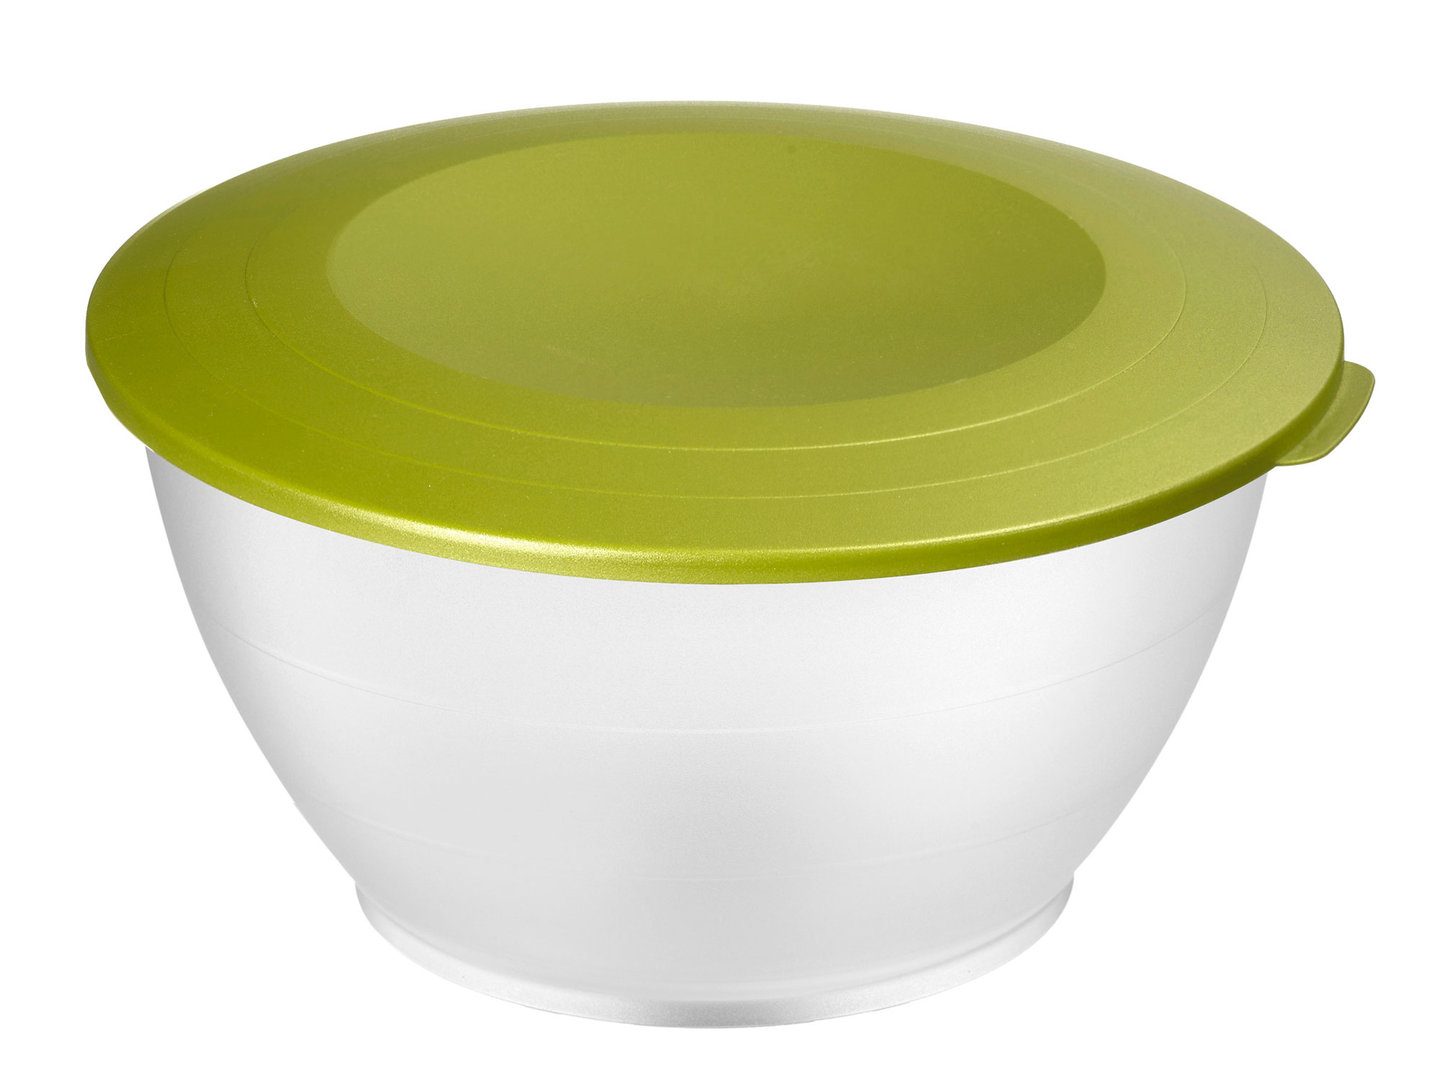 WESTMARK bowl with lid OLYMPIA 6,5 L apple green